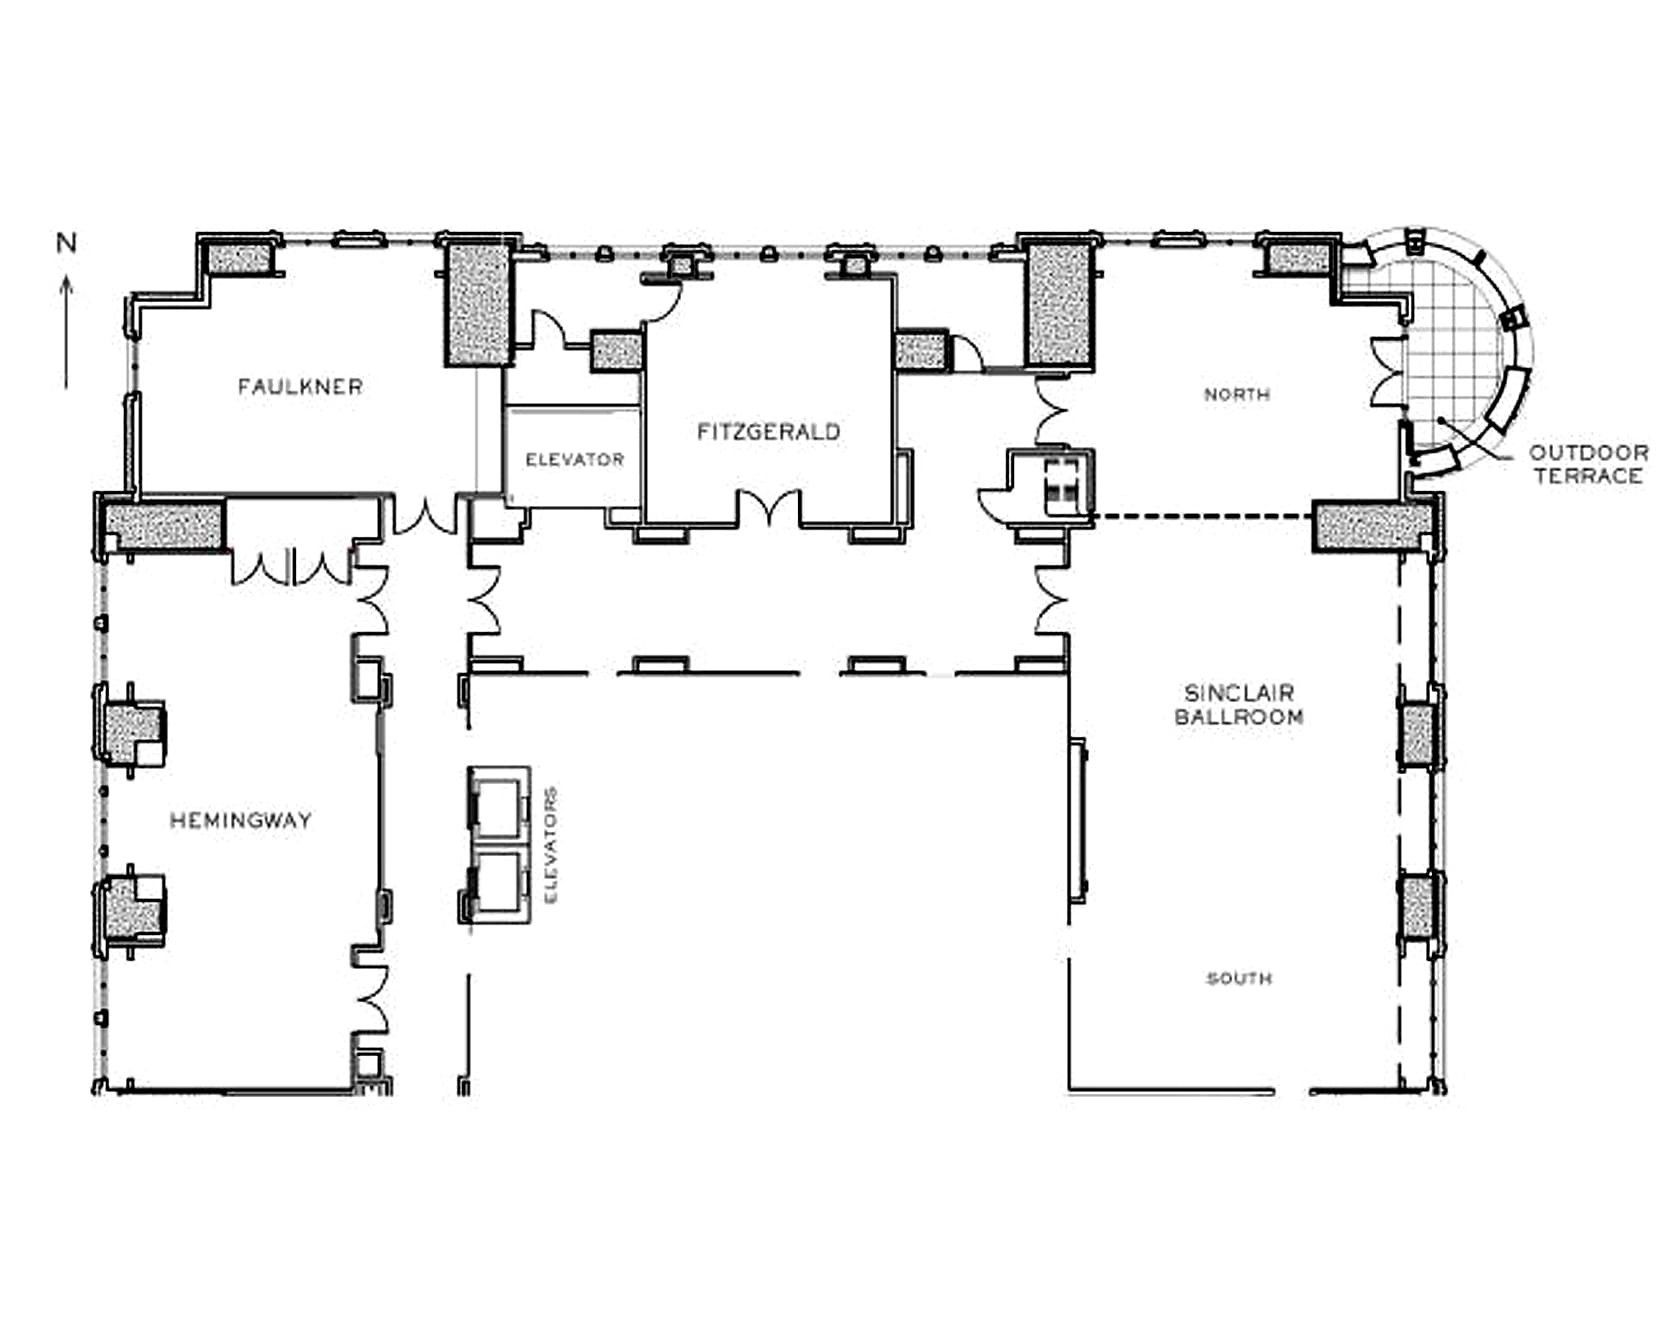 23 New Event Floor Plan Photograph All Designs Are Labeled Right To Apply To Your Plan As Well Event Floor Plan Floor Plans How To Plan Flooring